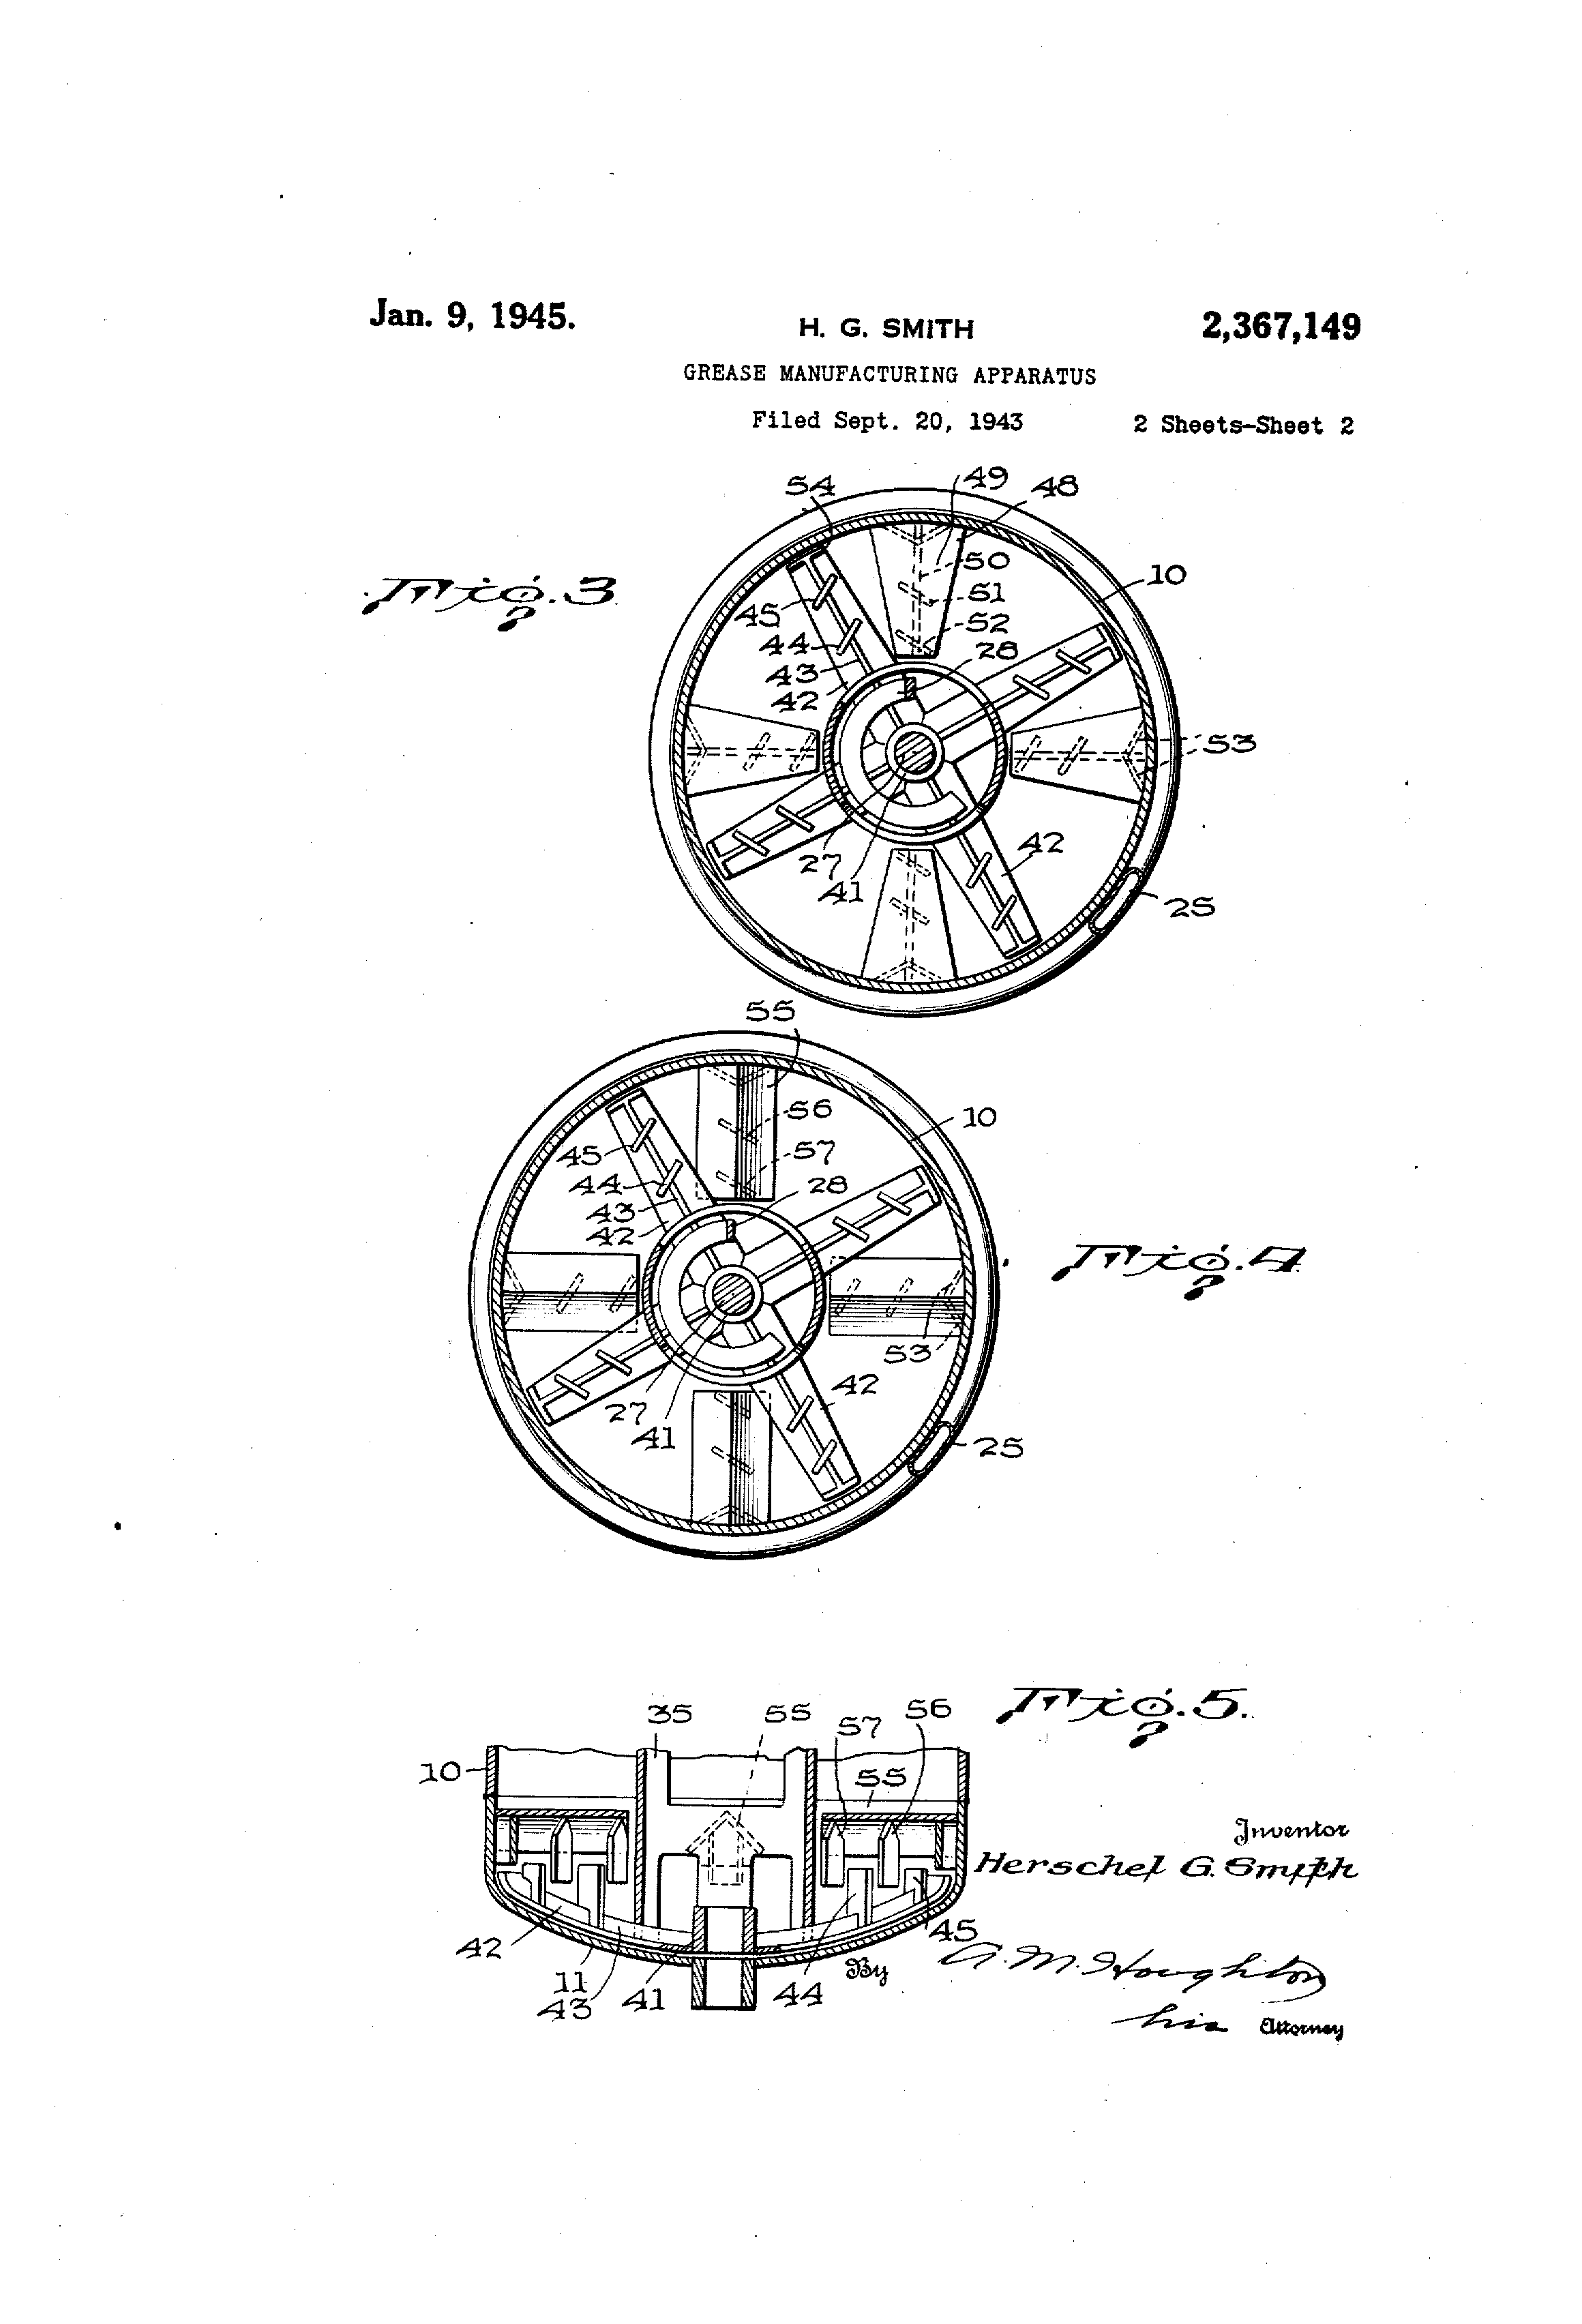 Patent US2367149 - Grease manufacturing apparatus